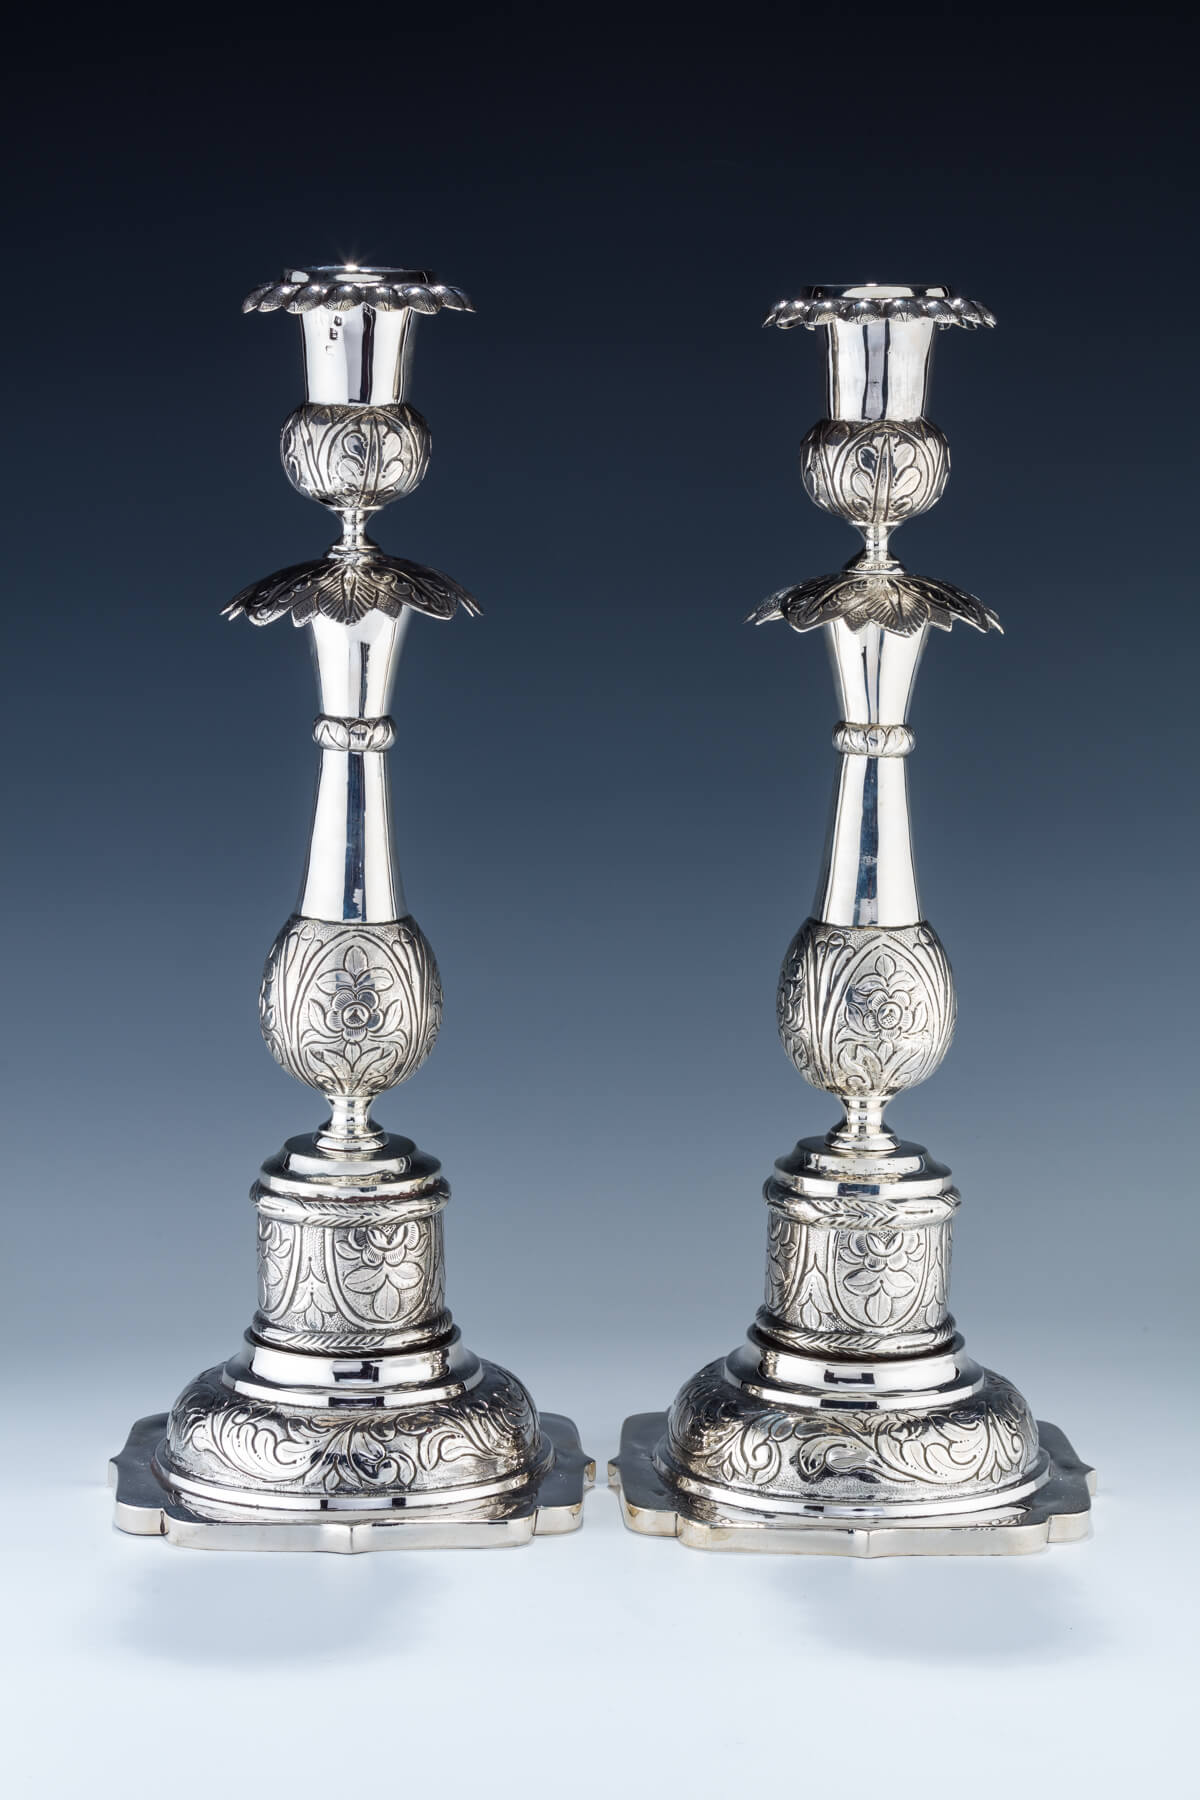 3. A Massive Pair Of Silver Candlesticks